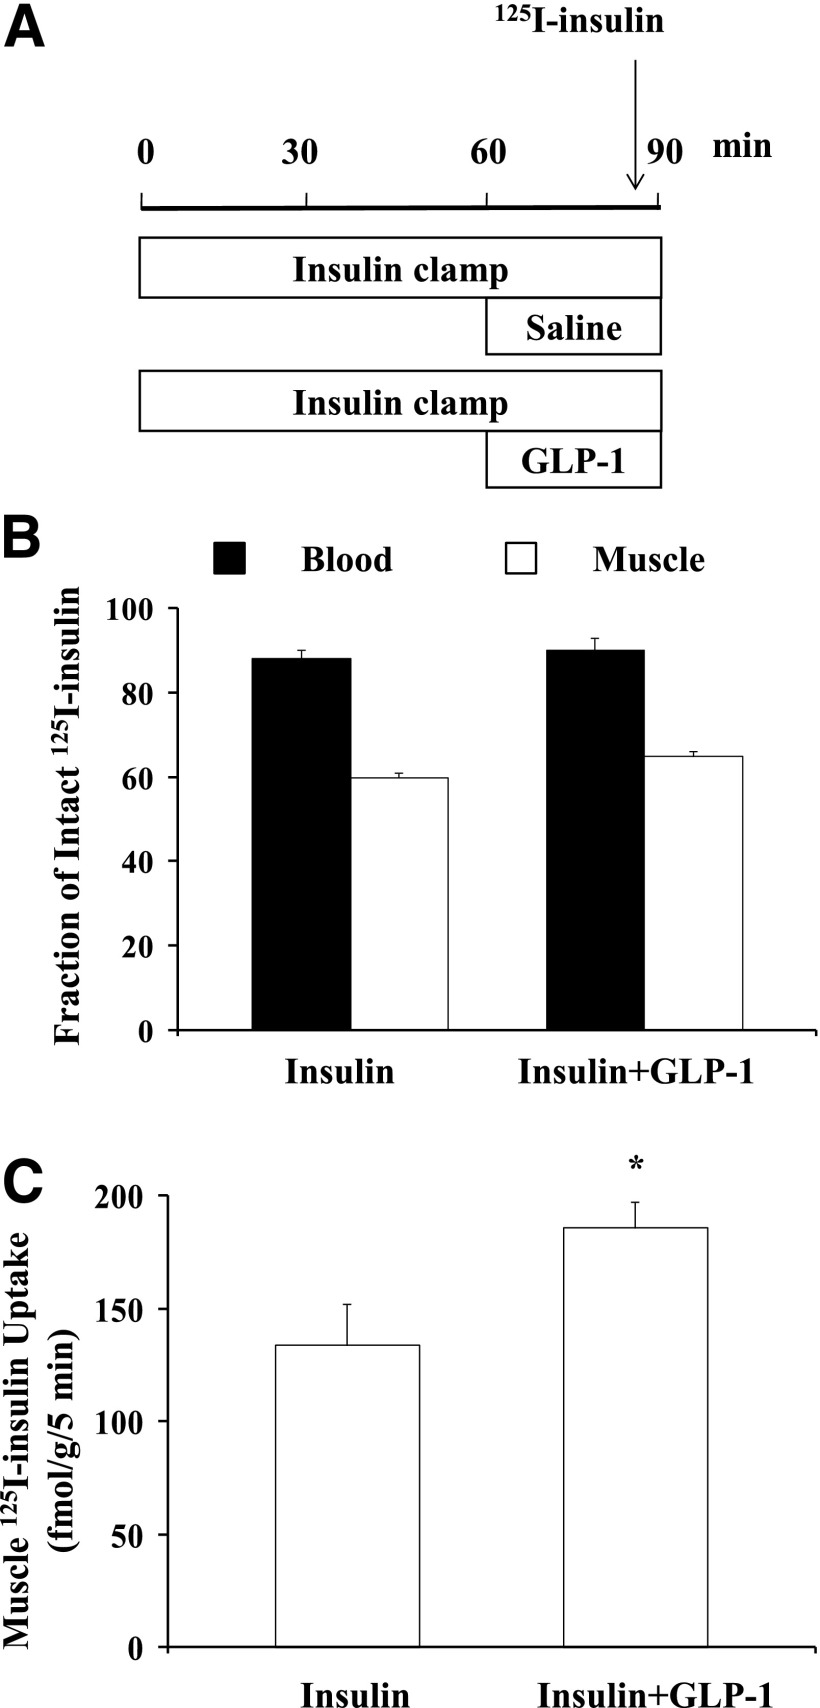 GLP-1 increases muscle 125 I-insulin uptake. Each rat received a 90-min euglycemic insulin clamp (3 mU/kg/min) with or without simultaneous GLP-1 infusion (30 pmol/kg/min) for the last 30 min. A bolus intravenous injection of 125 I-insulin (1.5 µCi) was given 5 min before the end of insulin ± GLP-1 infusions. Blood and skeletal muscle were collected for determination of intact 125 I-insulin. A : Study protocol. B : Fraction of intact 125 I-insulin in blood and muscle. C : Muscle insulin uptake. n = 5 each. Compared with insulin alone, * P